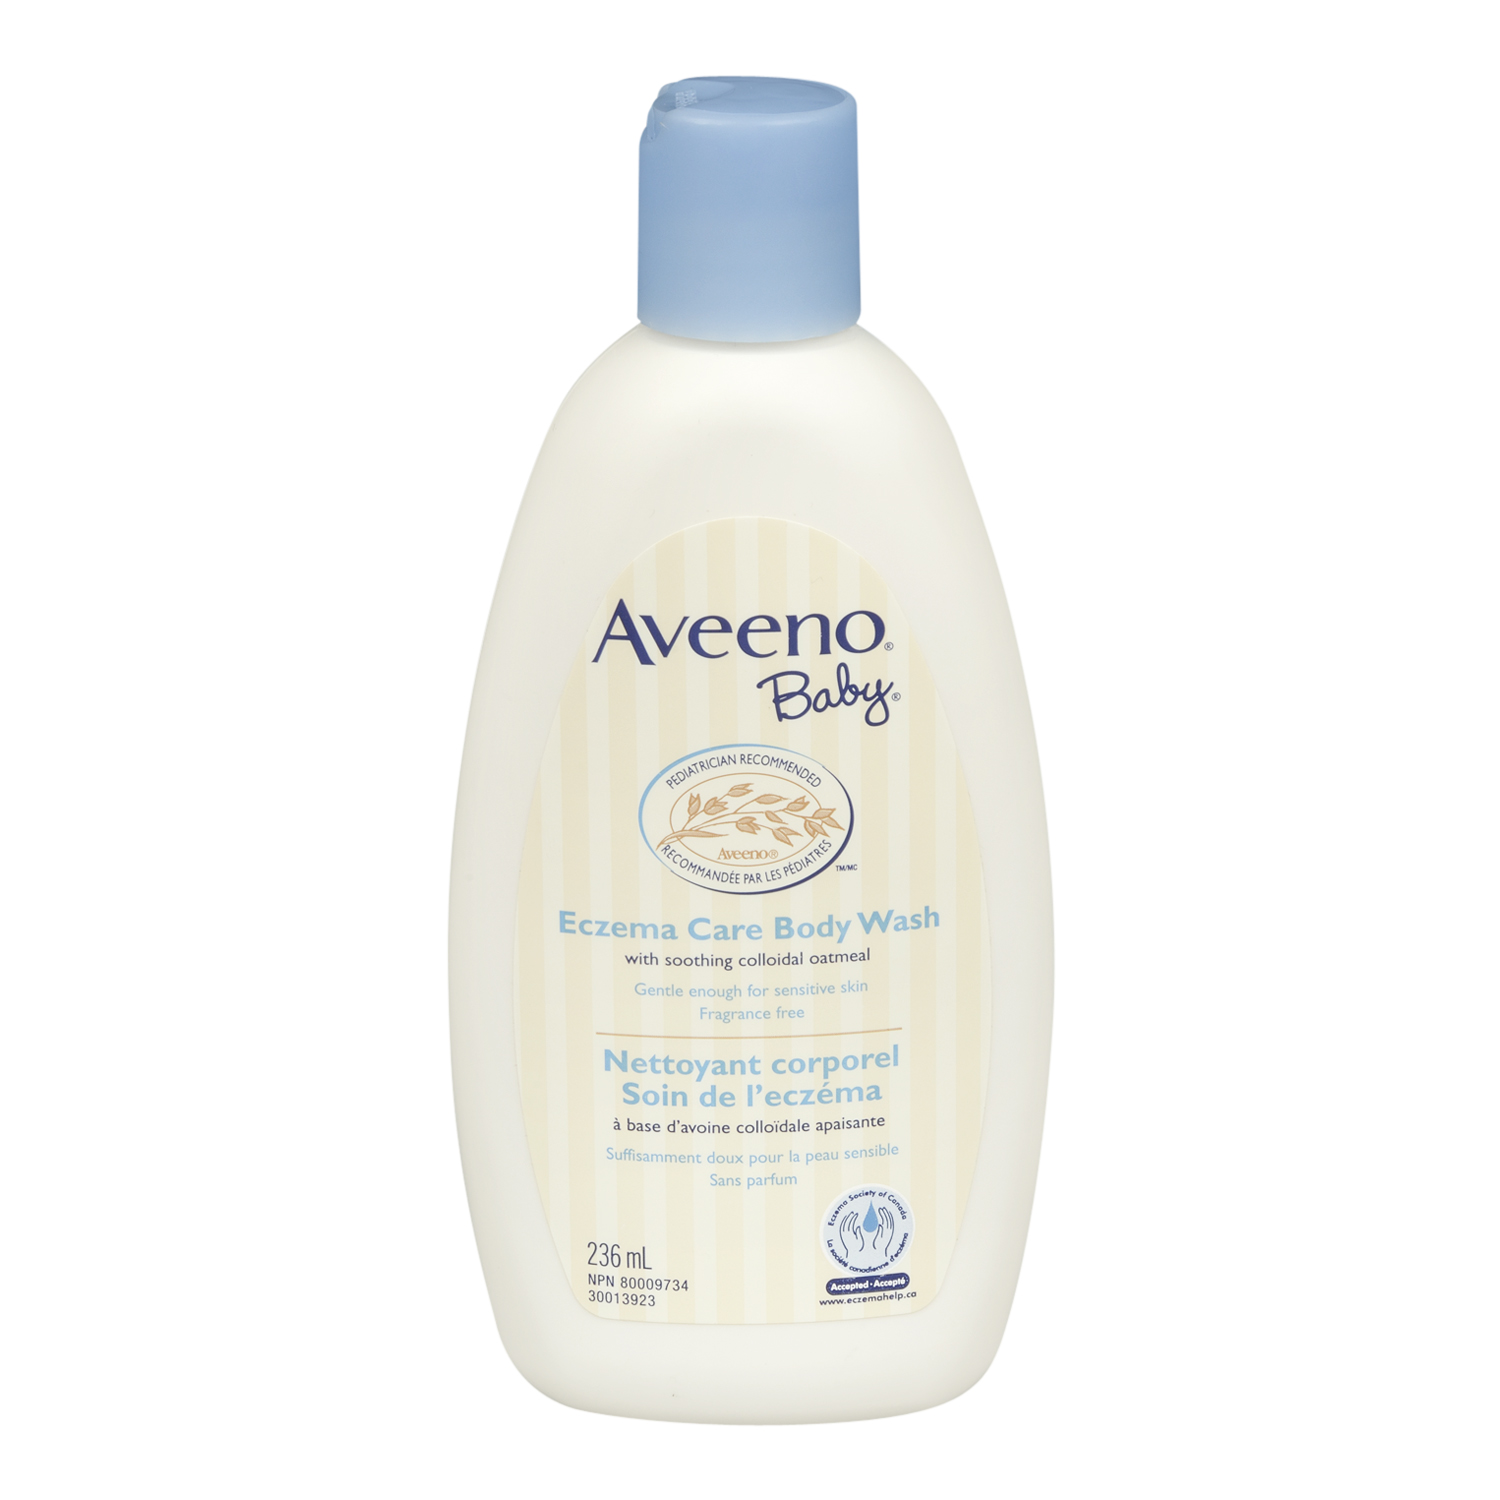 Aveeno Baby Eczema Care Body Wash